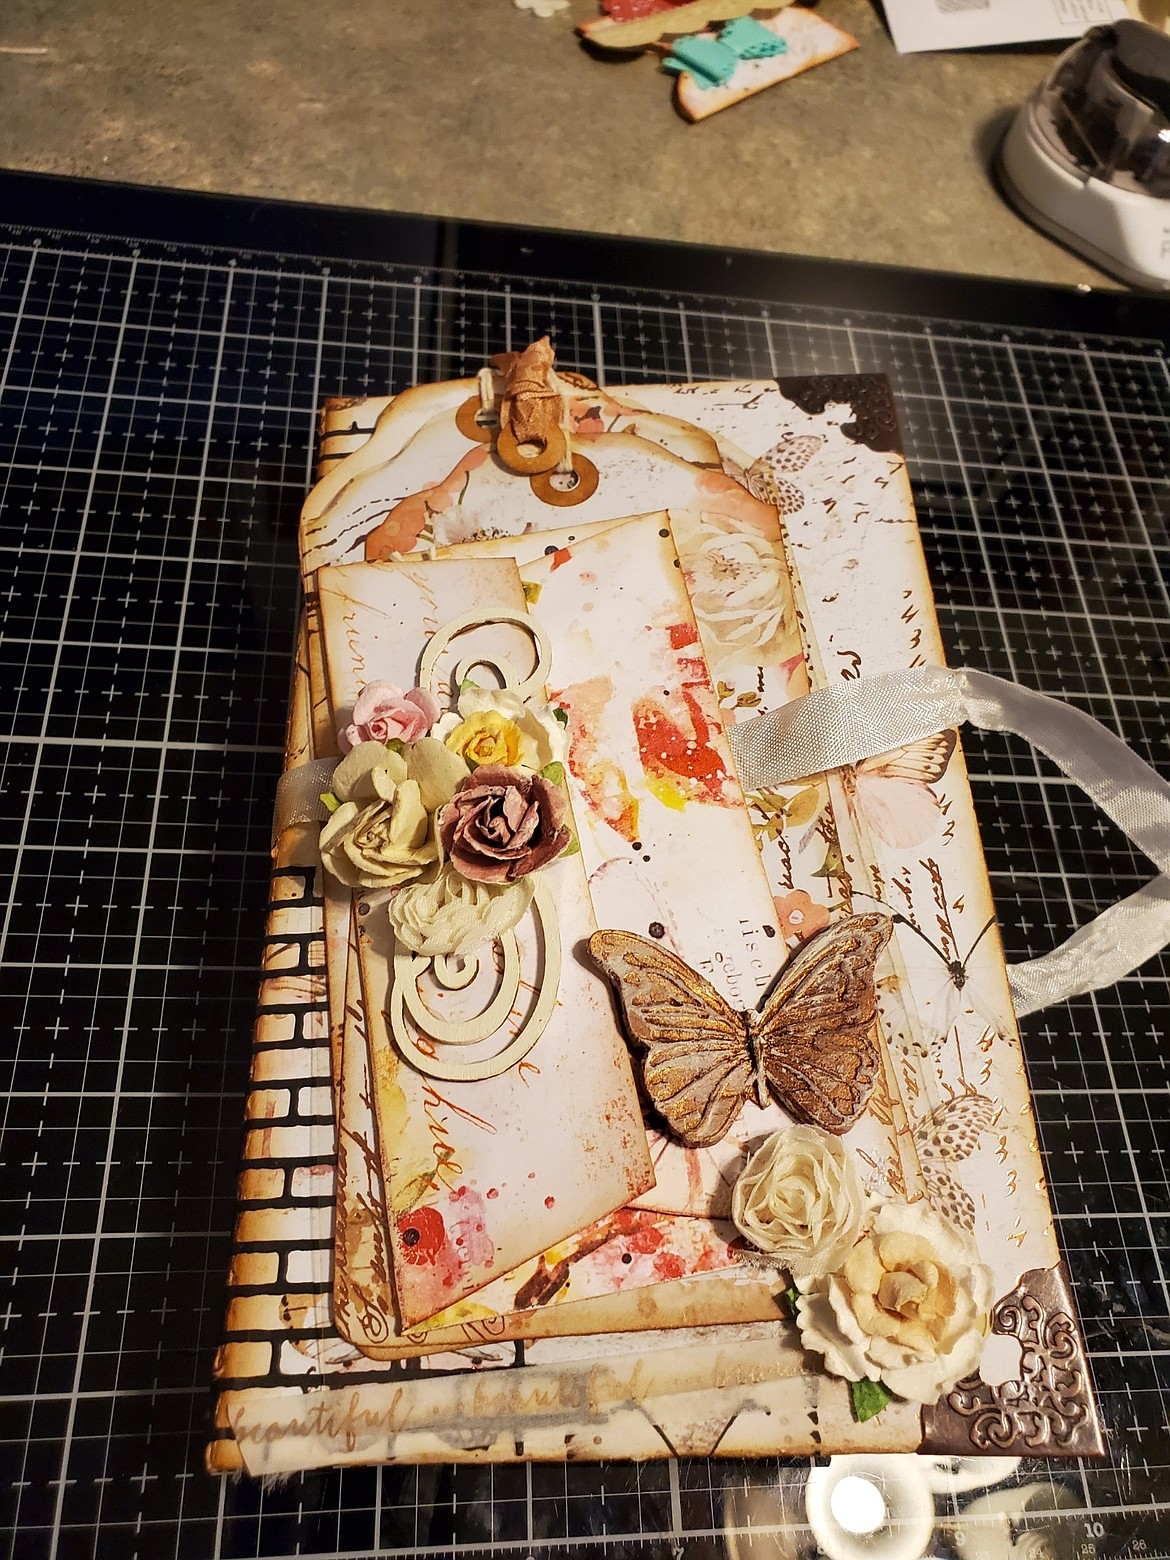 A journal created by paper artist Tiffany Fultz, Old Hotel Art Gallery artist of the month for April.